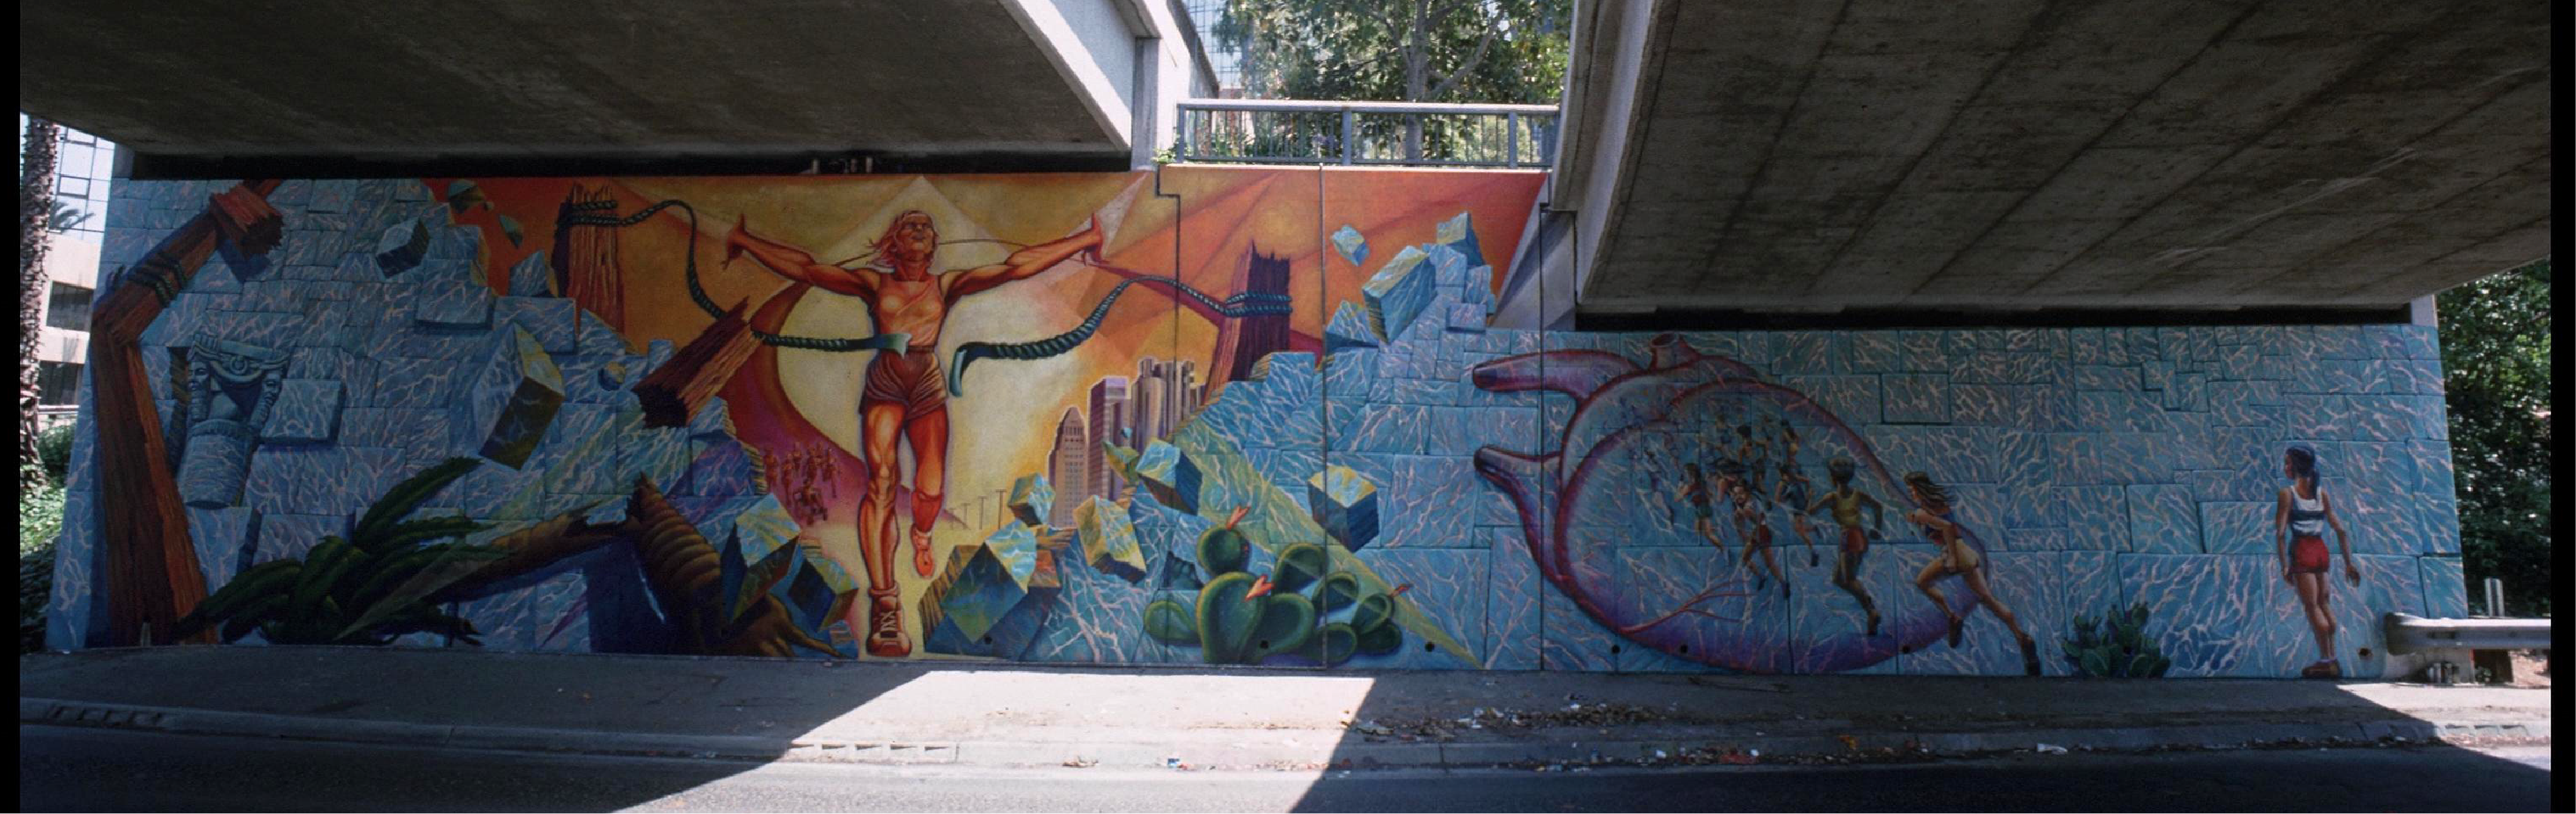 Sign our Petition to Stand for Public Art and Save Iconic Mural 'Hitting The Wall'